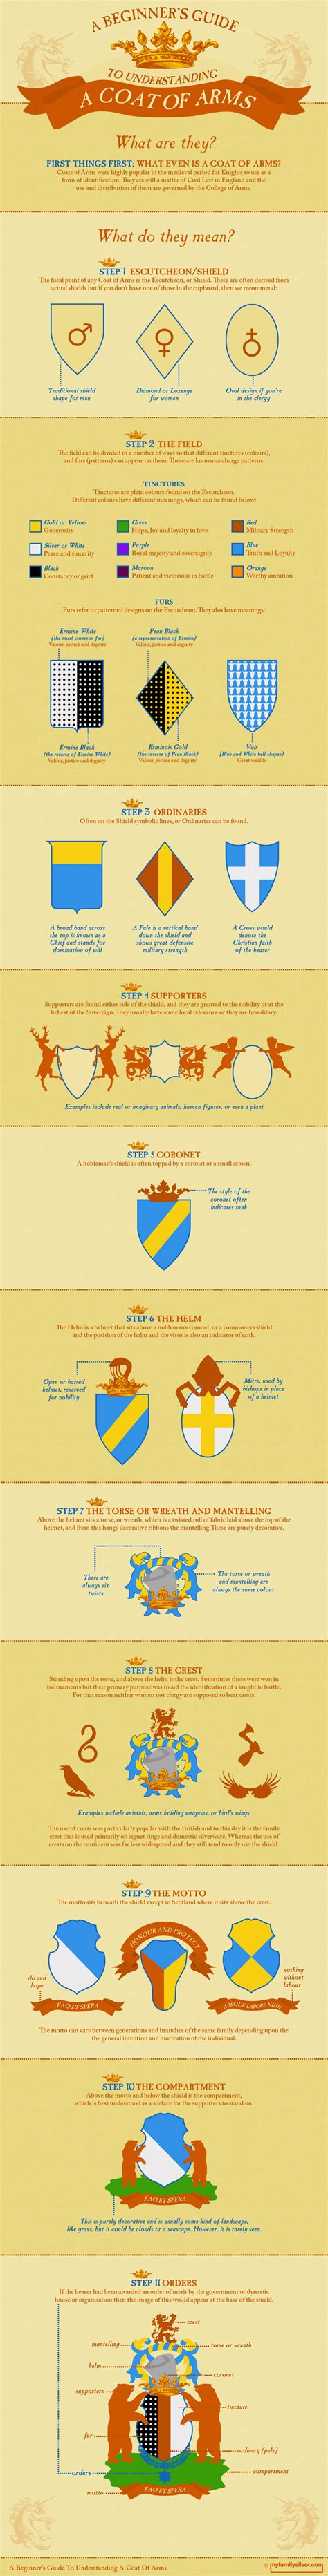 a beginner s guide to a beginner s guide to understanding a coat of arms visual ly